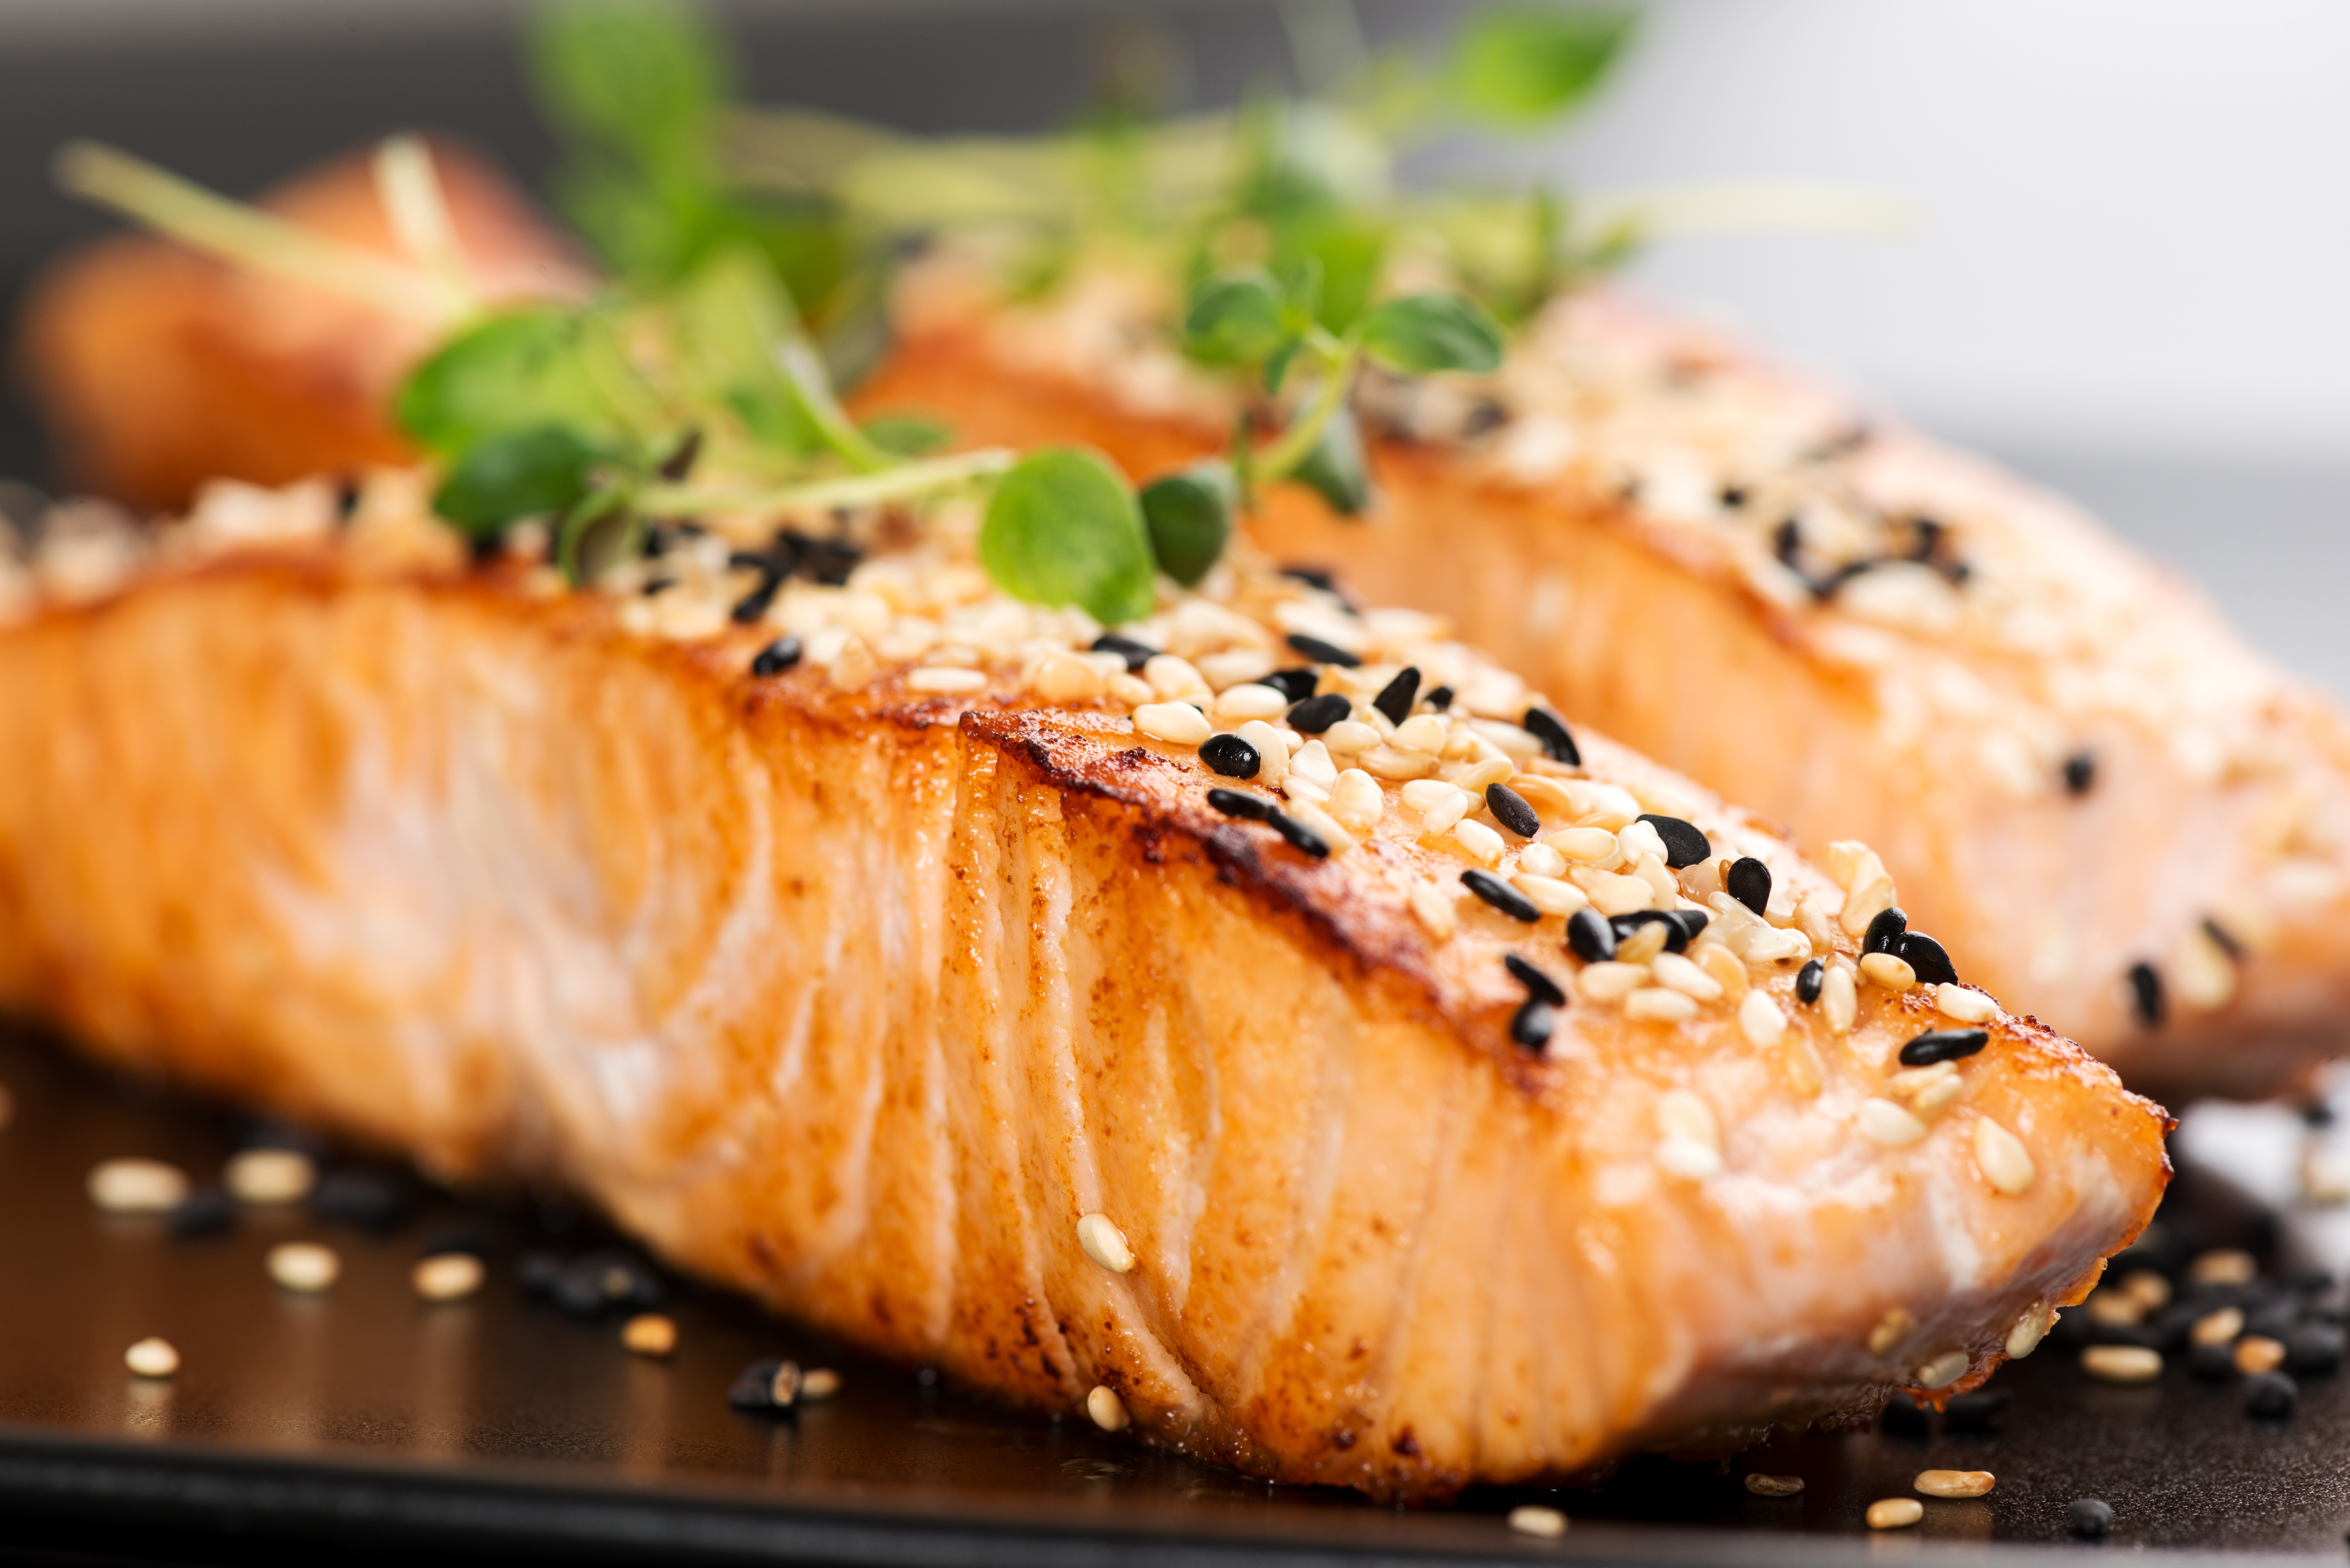 How to fry salmon